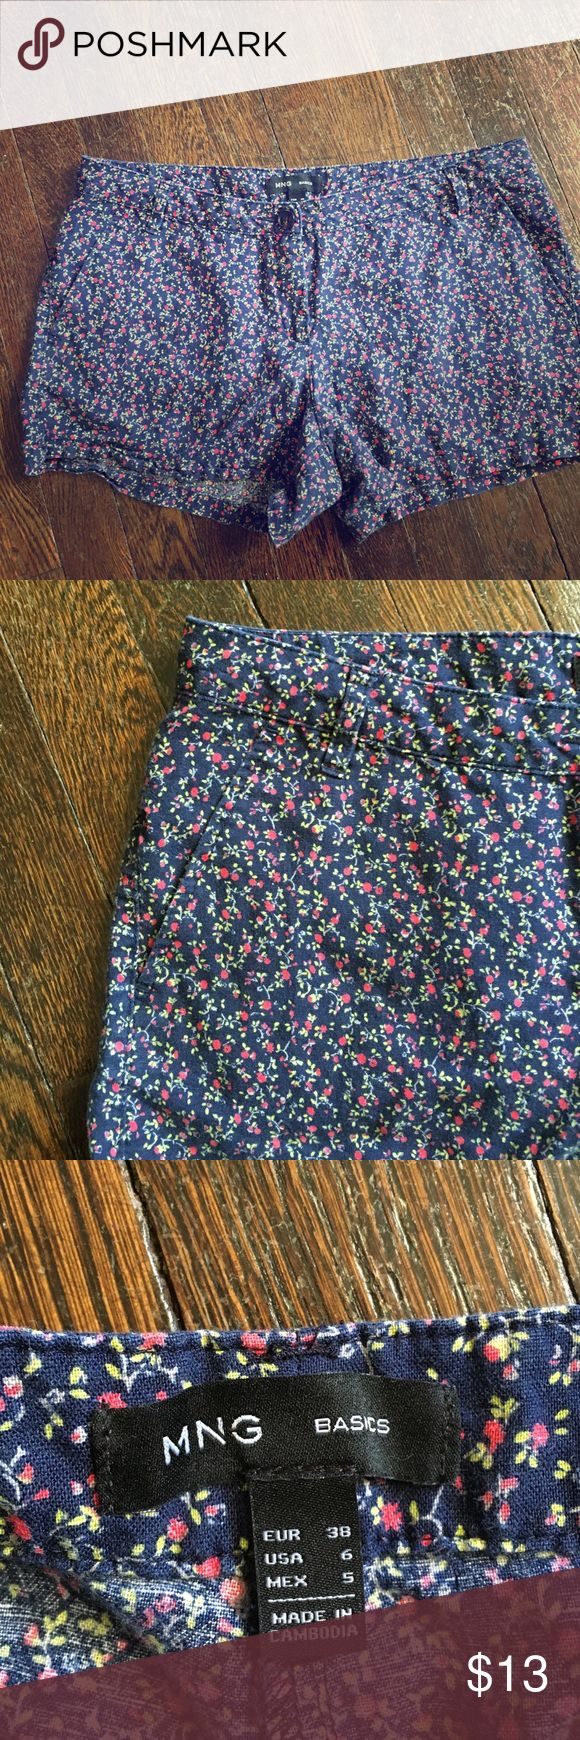 Mango Floral Shorts Cute floral printed shorts. Light cotton material. Size 6. Pre loved. No holes, stains. Or wear spots. Mango Shorts